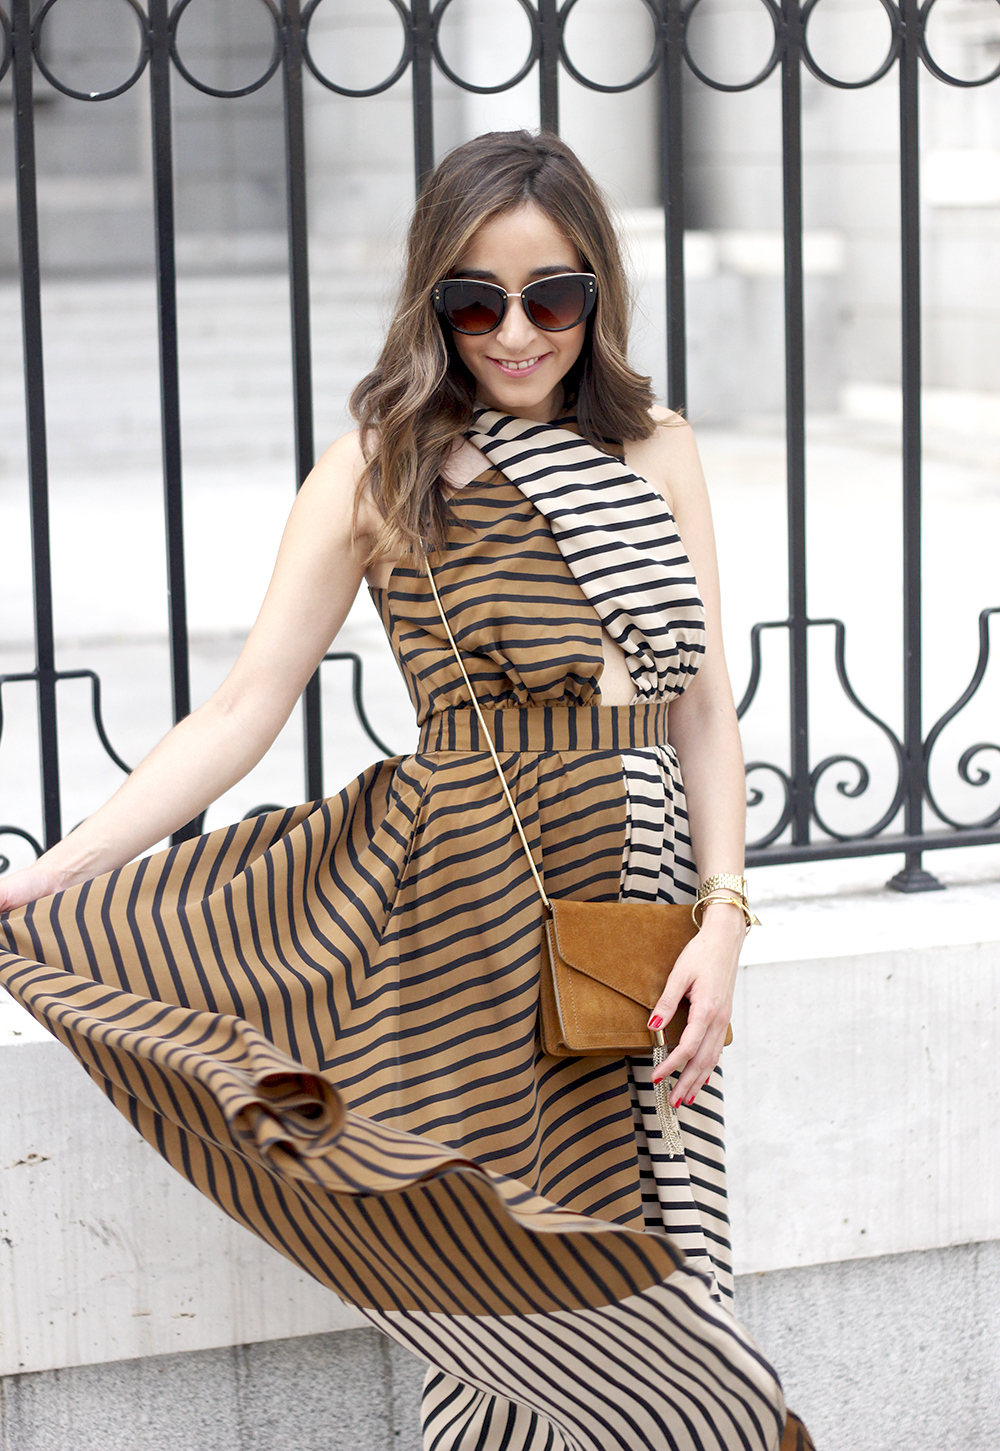 Maxi Striped Dress summer outfit sunnies uterqüe black sandals style fashion24